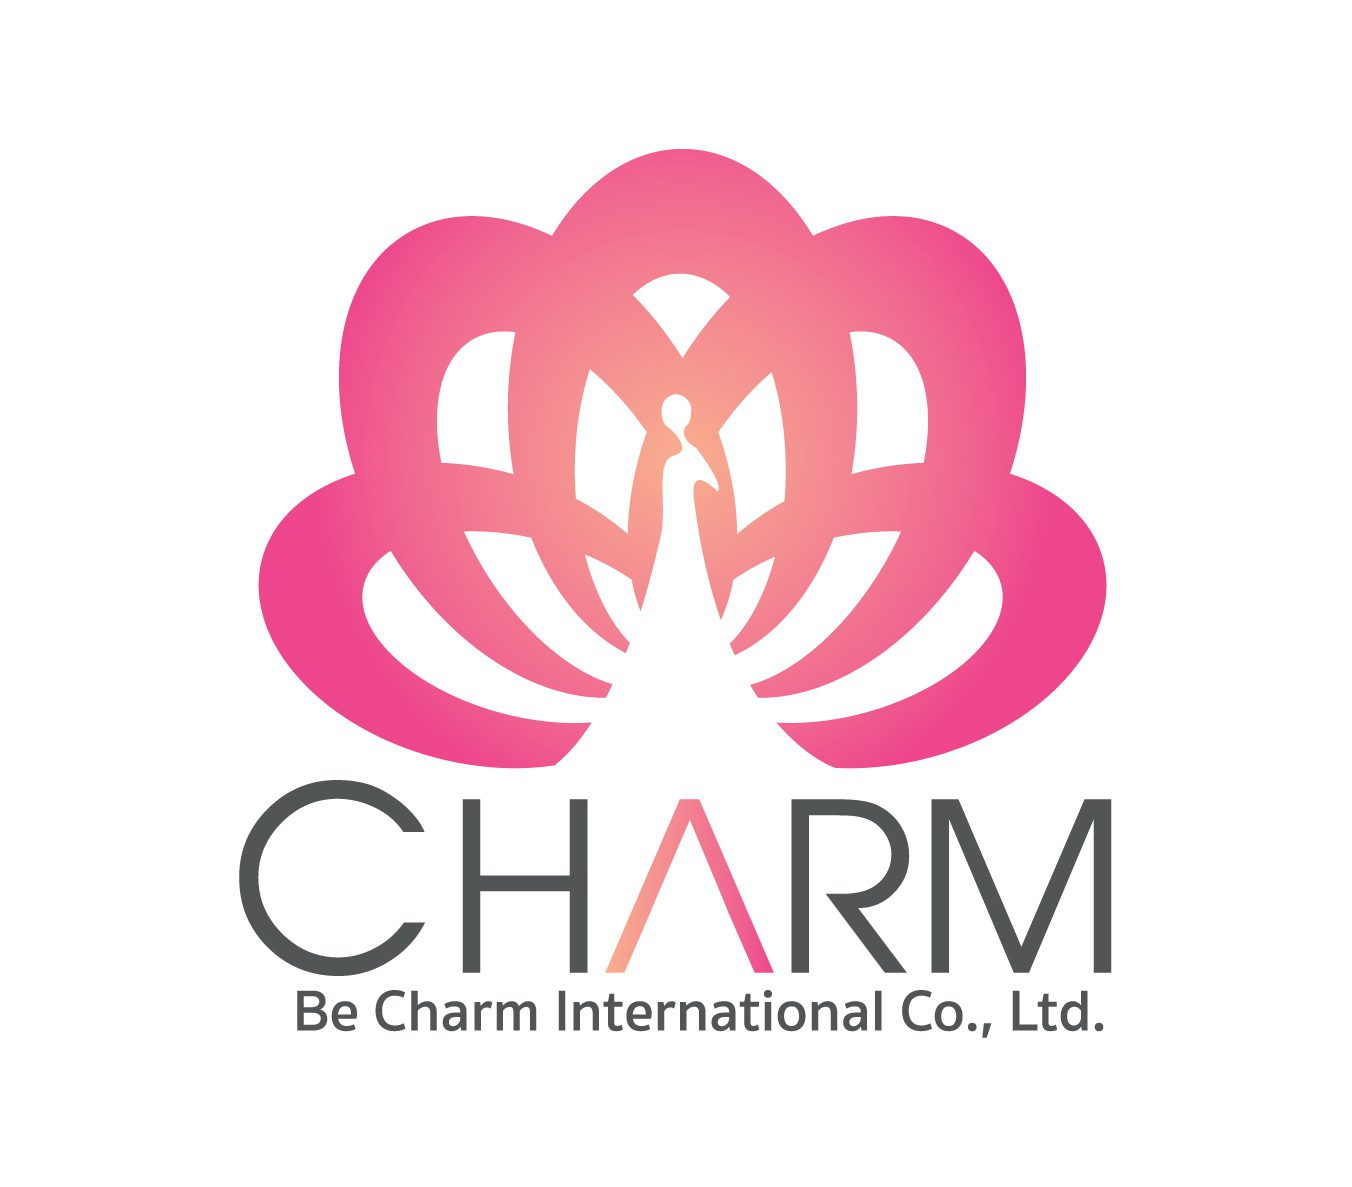 Becharm international